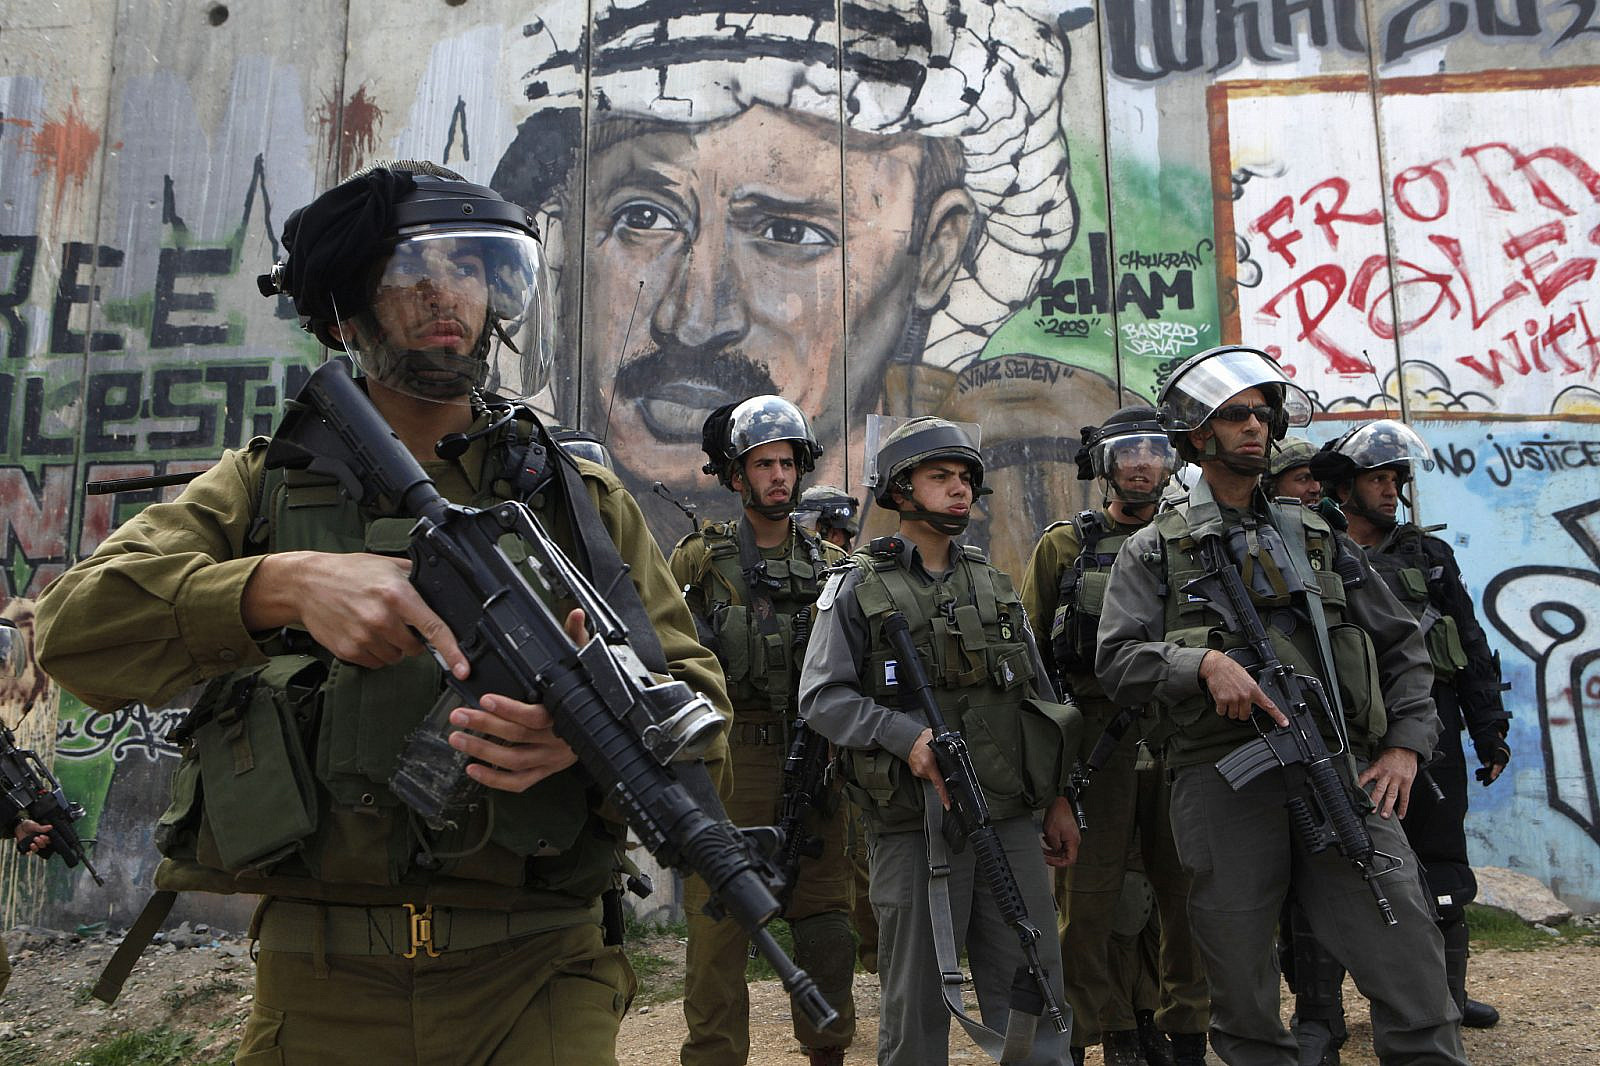 The Israeli center's road to endless occupation